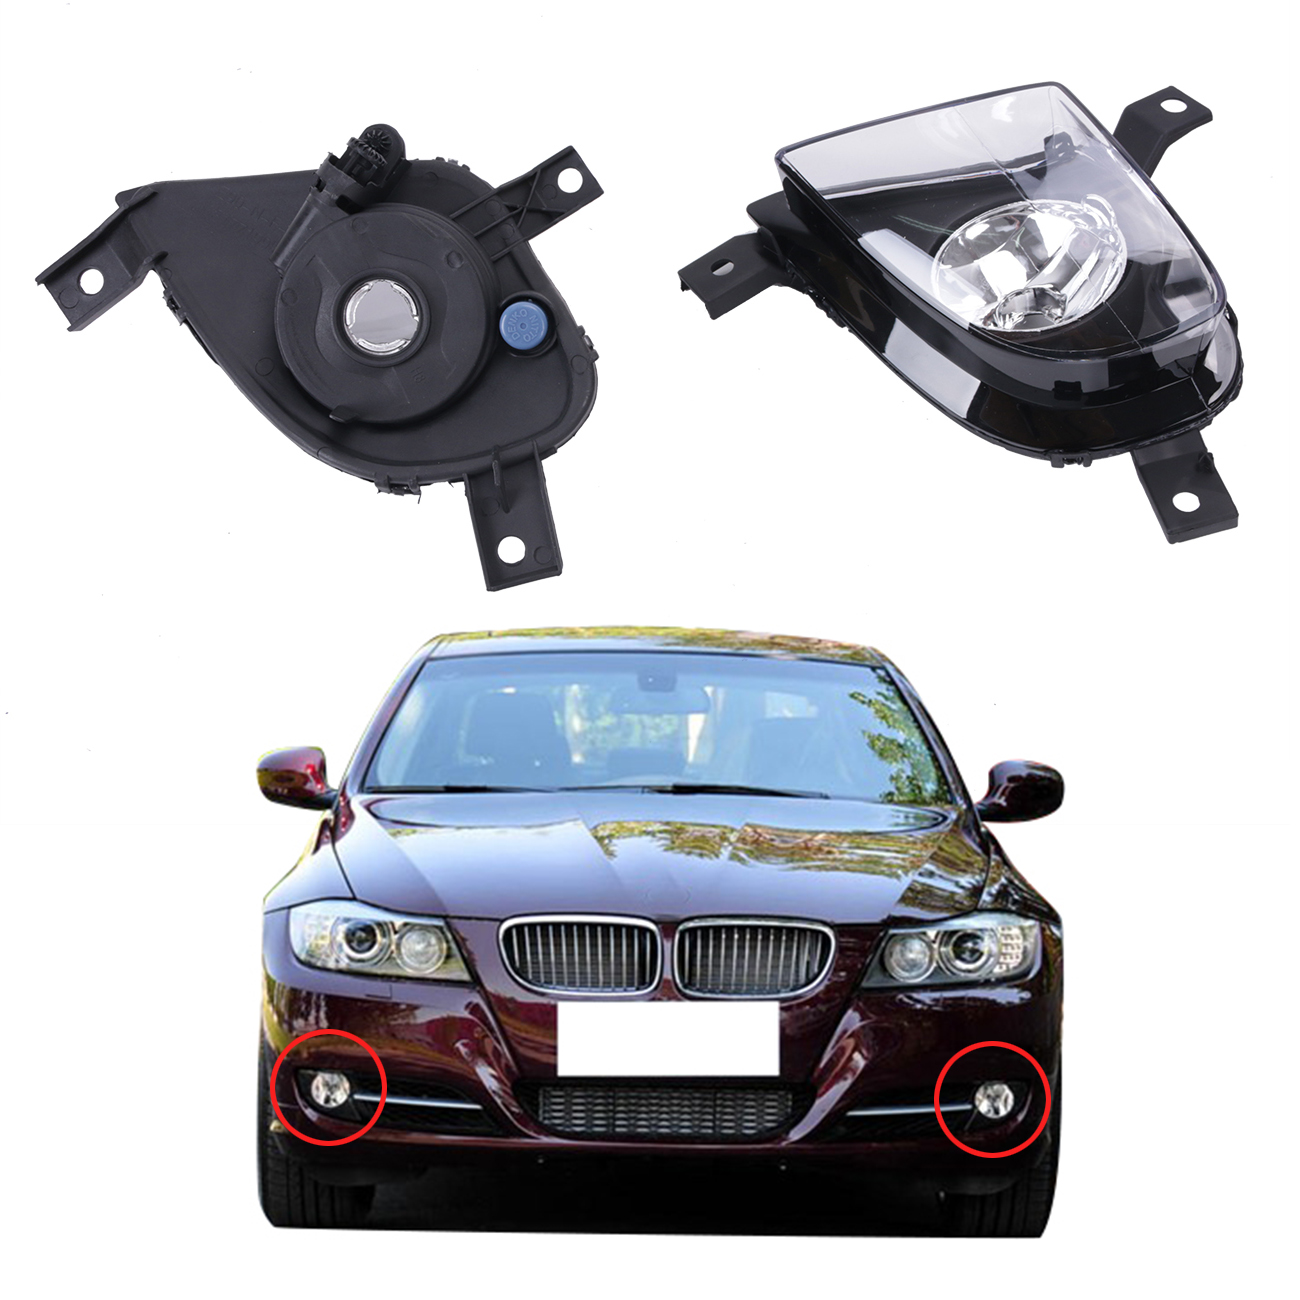 Fog Lights Lamps Foglamps Cover For BMW 3 Series 328i 323i 335d 335i E90 E91 2009 2010 2011 OEM 63177199893 63177199894 #W085 pneumatic quick exhaust valve qe 01 qe 02 qe 03 qe 04 page 4